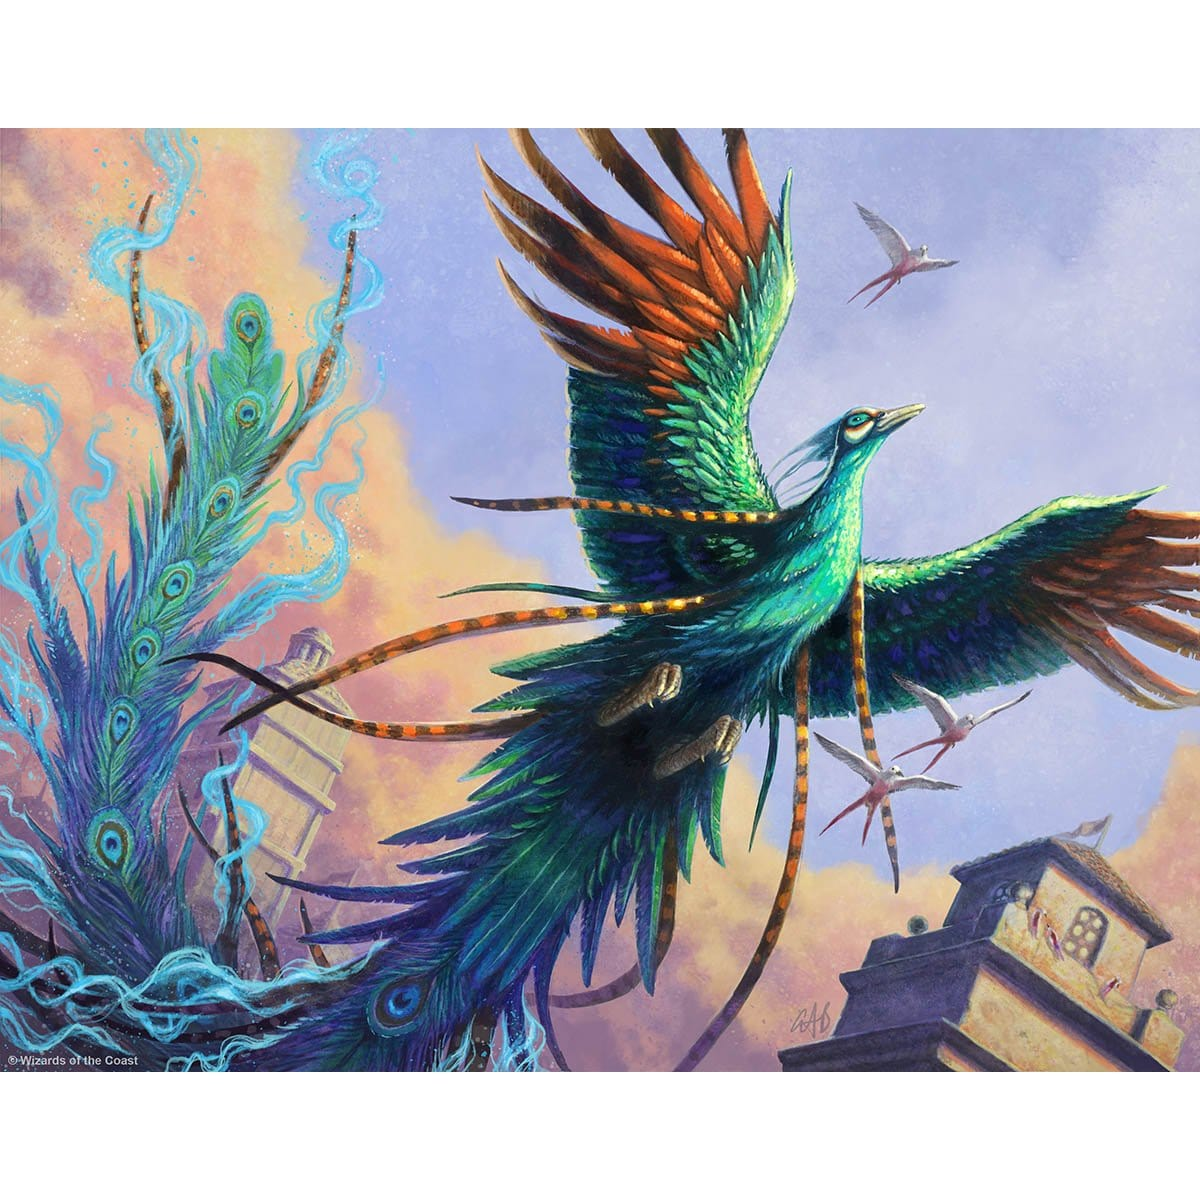 Coveted Peacock Print - Print - Original Magic Art - Accessories for Magic the Gathering and other card games